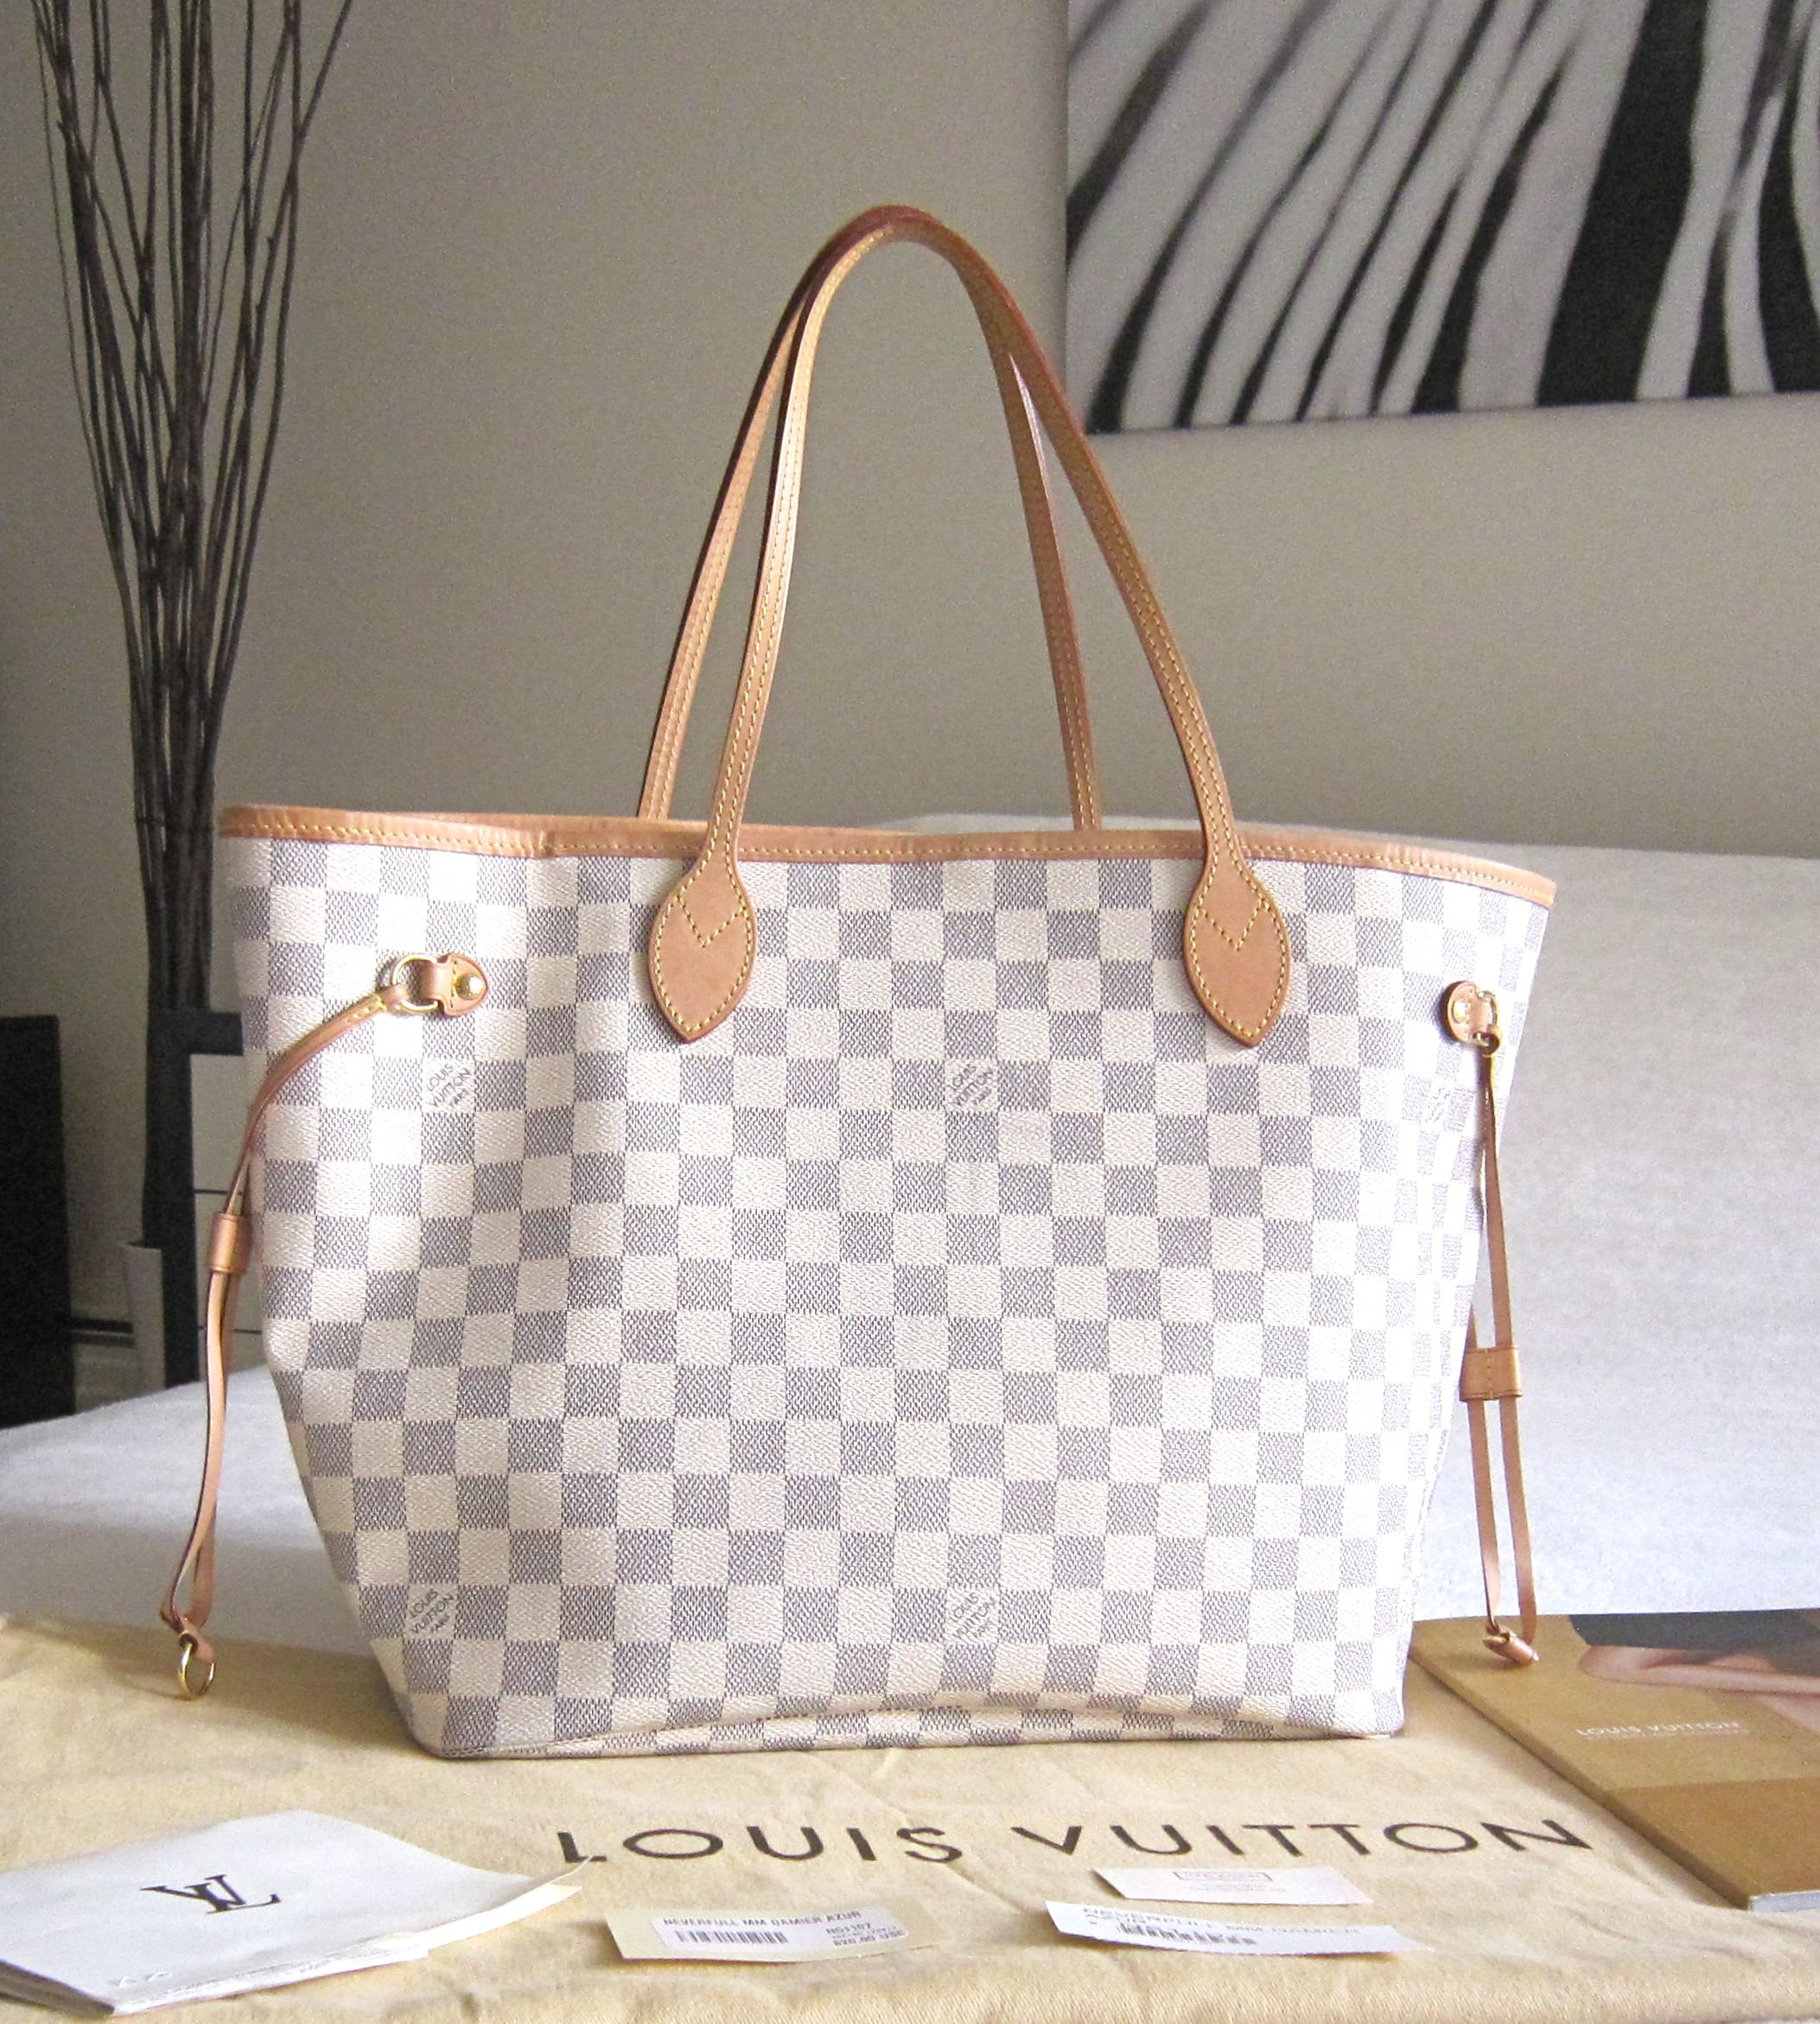 af51d97eb2d0 louis vuitton neverfull white